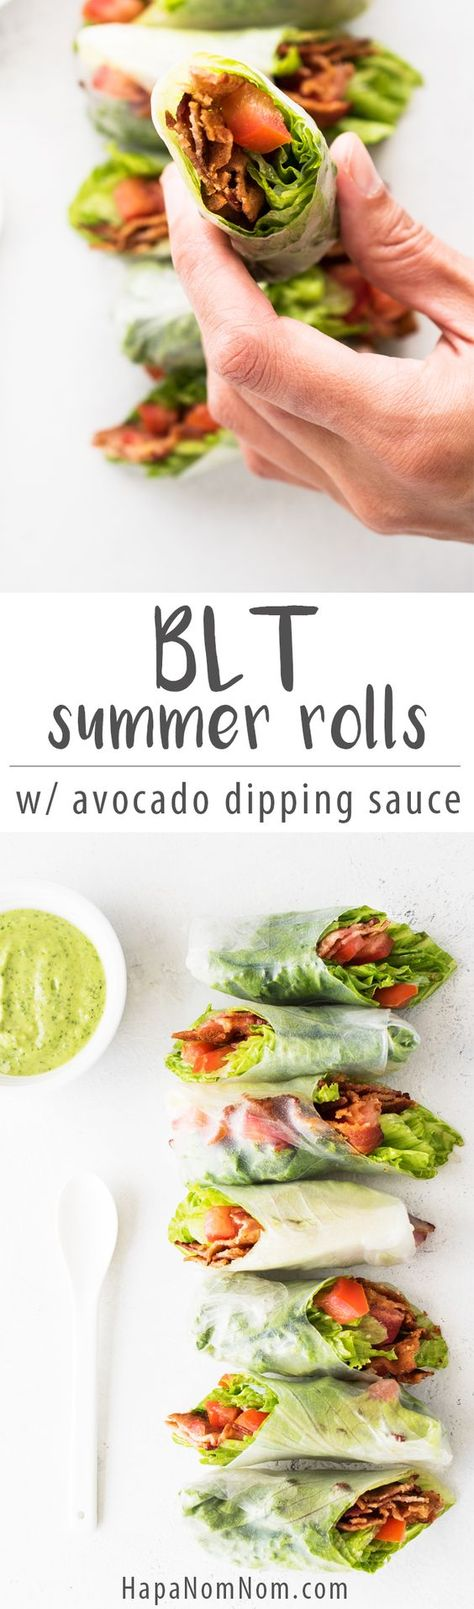 BLT Summer Rolls with Avocado Dipping Sauce